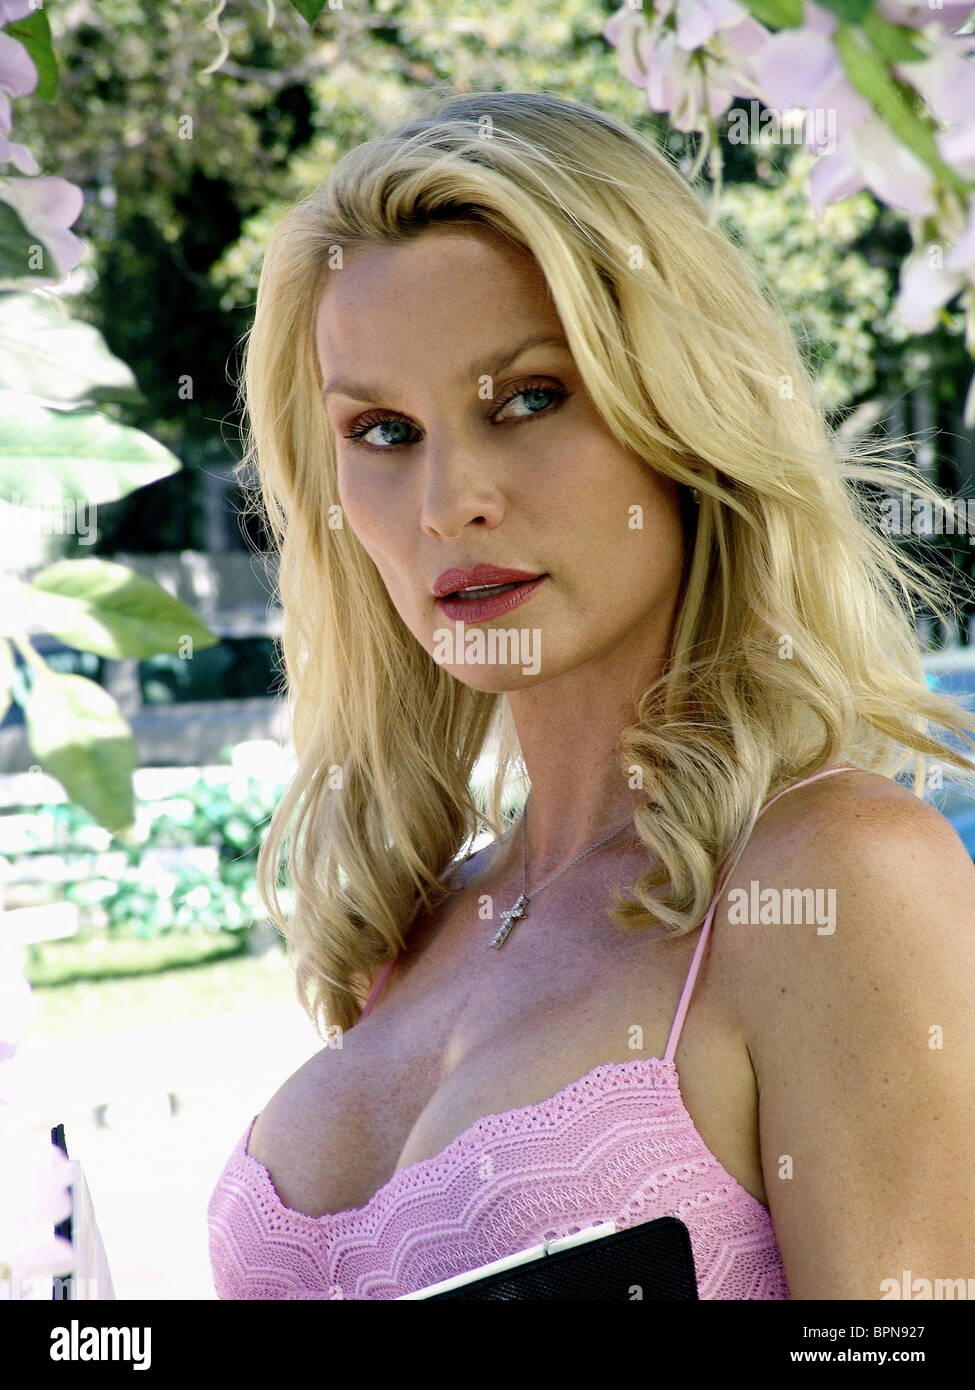 Nicollette Sheridan (born 1963) Nicollette Sheridan (born 1963) new photo